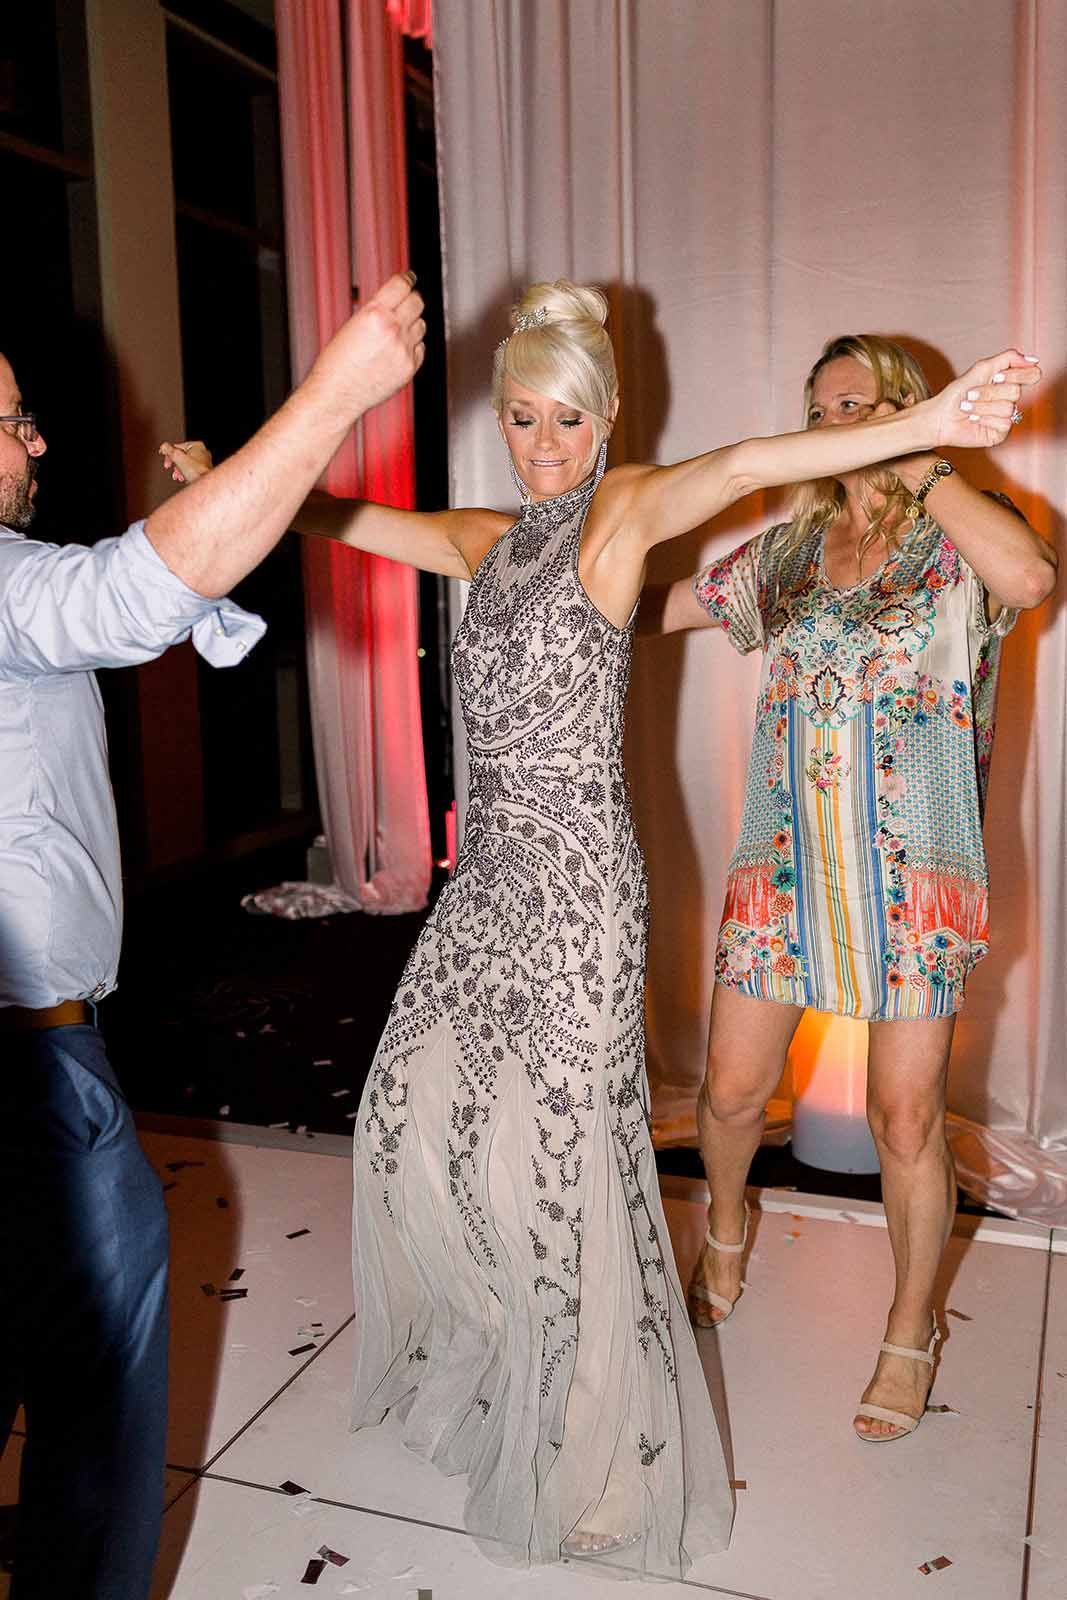 Guests dance with the bride on the dance floor at a formal wedding reception